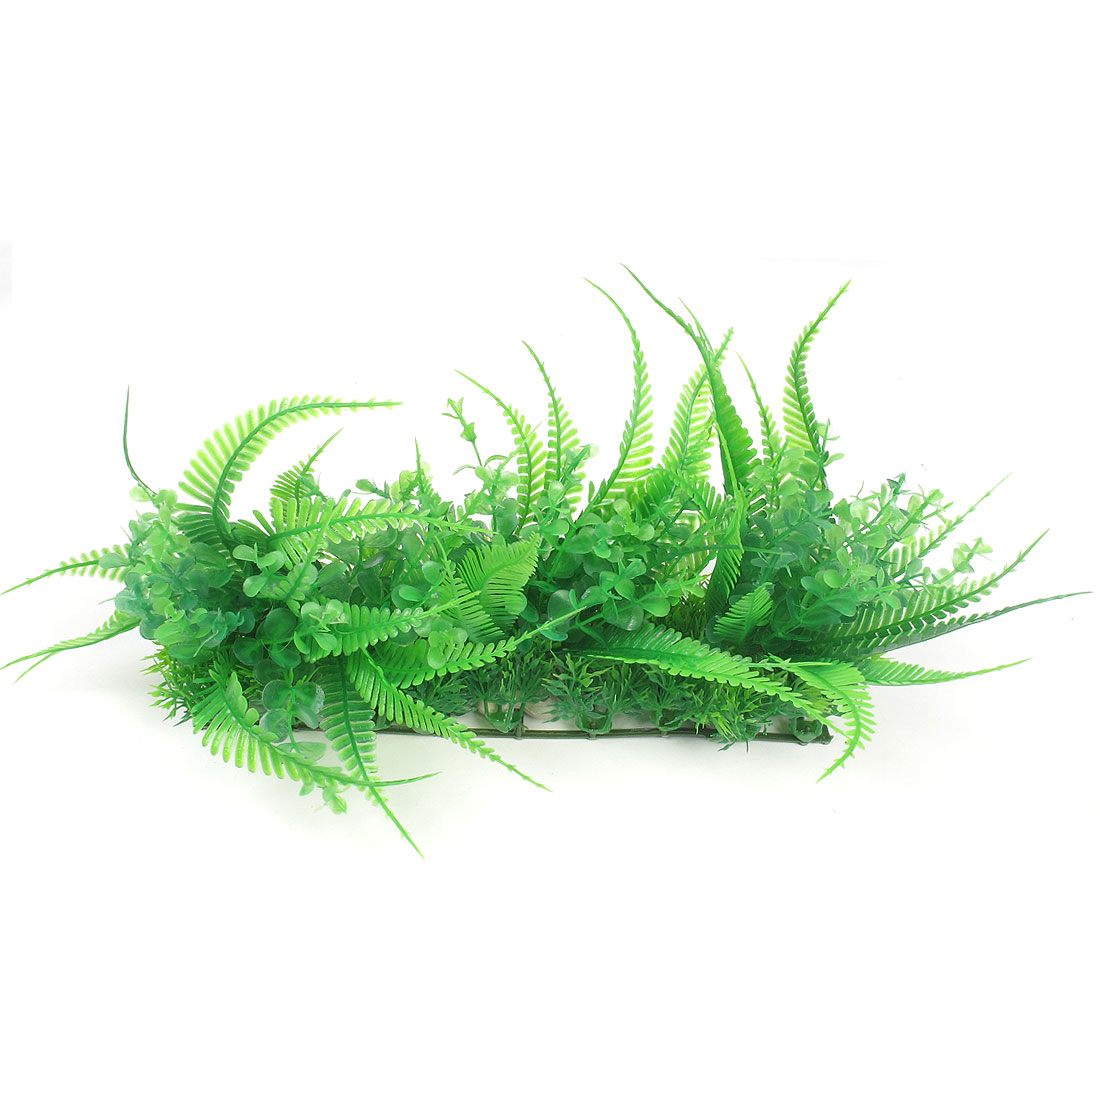 "6.3"" Aquarium Underwater Aquascaping Green Aquatic Plant Grass"